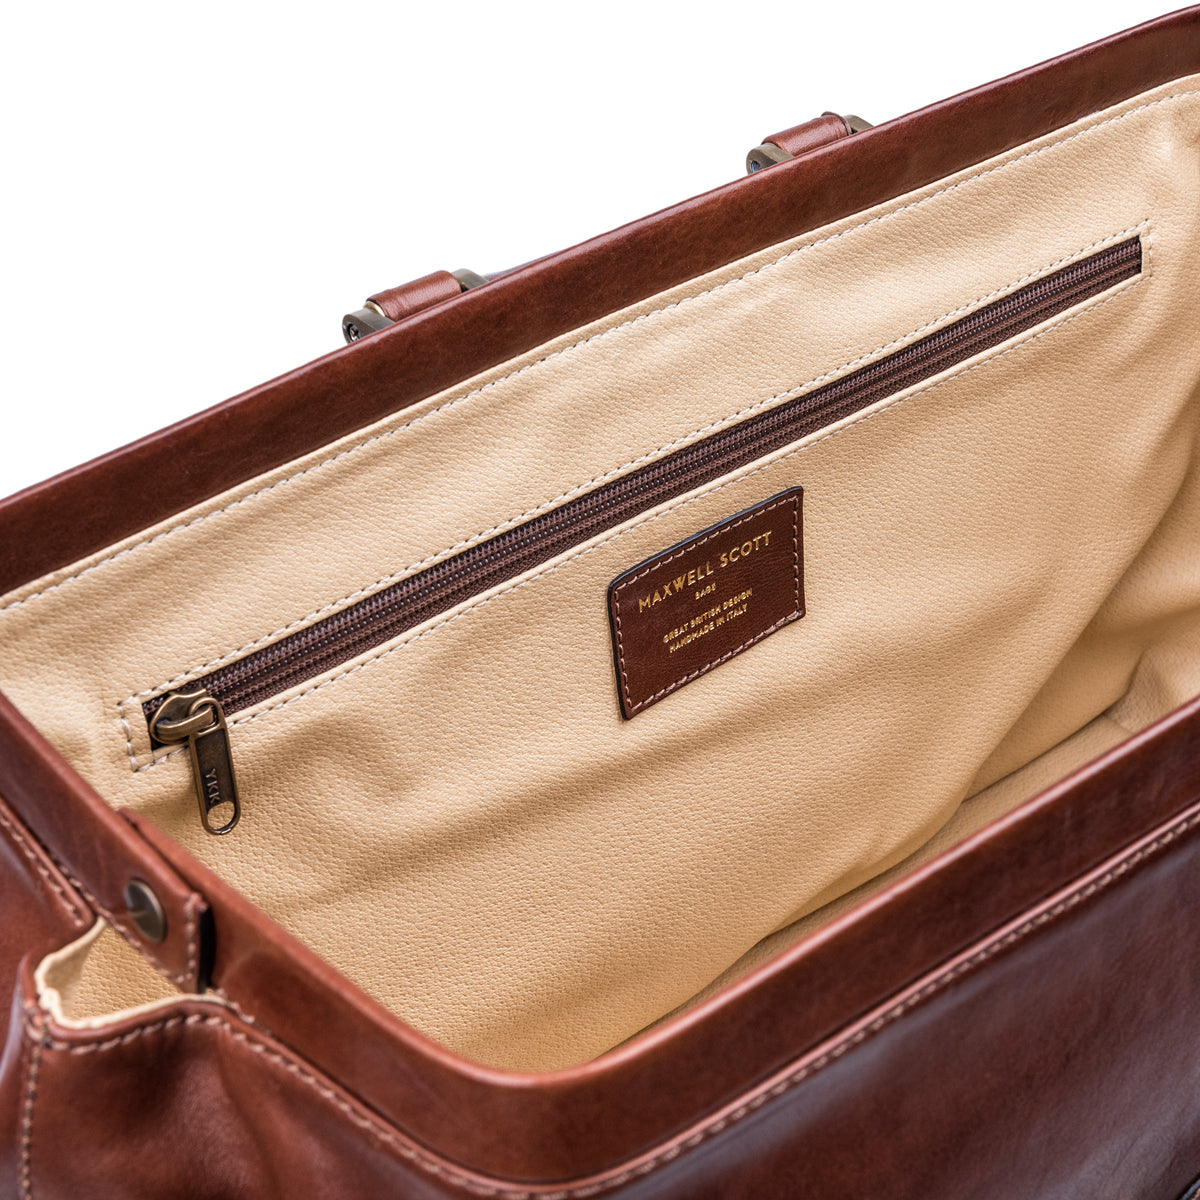 Image 7 of the Large ''Donnini' Chestnut Veg-Tanned Leather Doctor's Bag